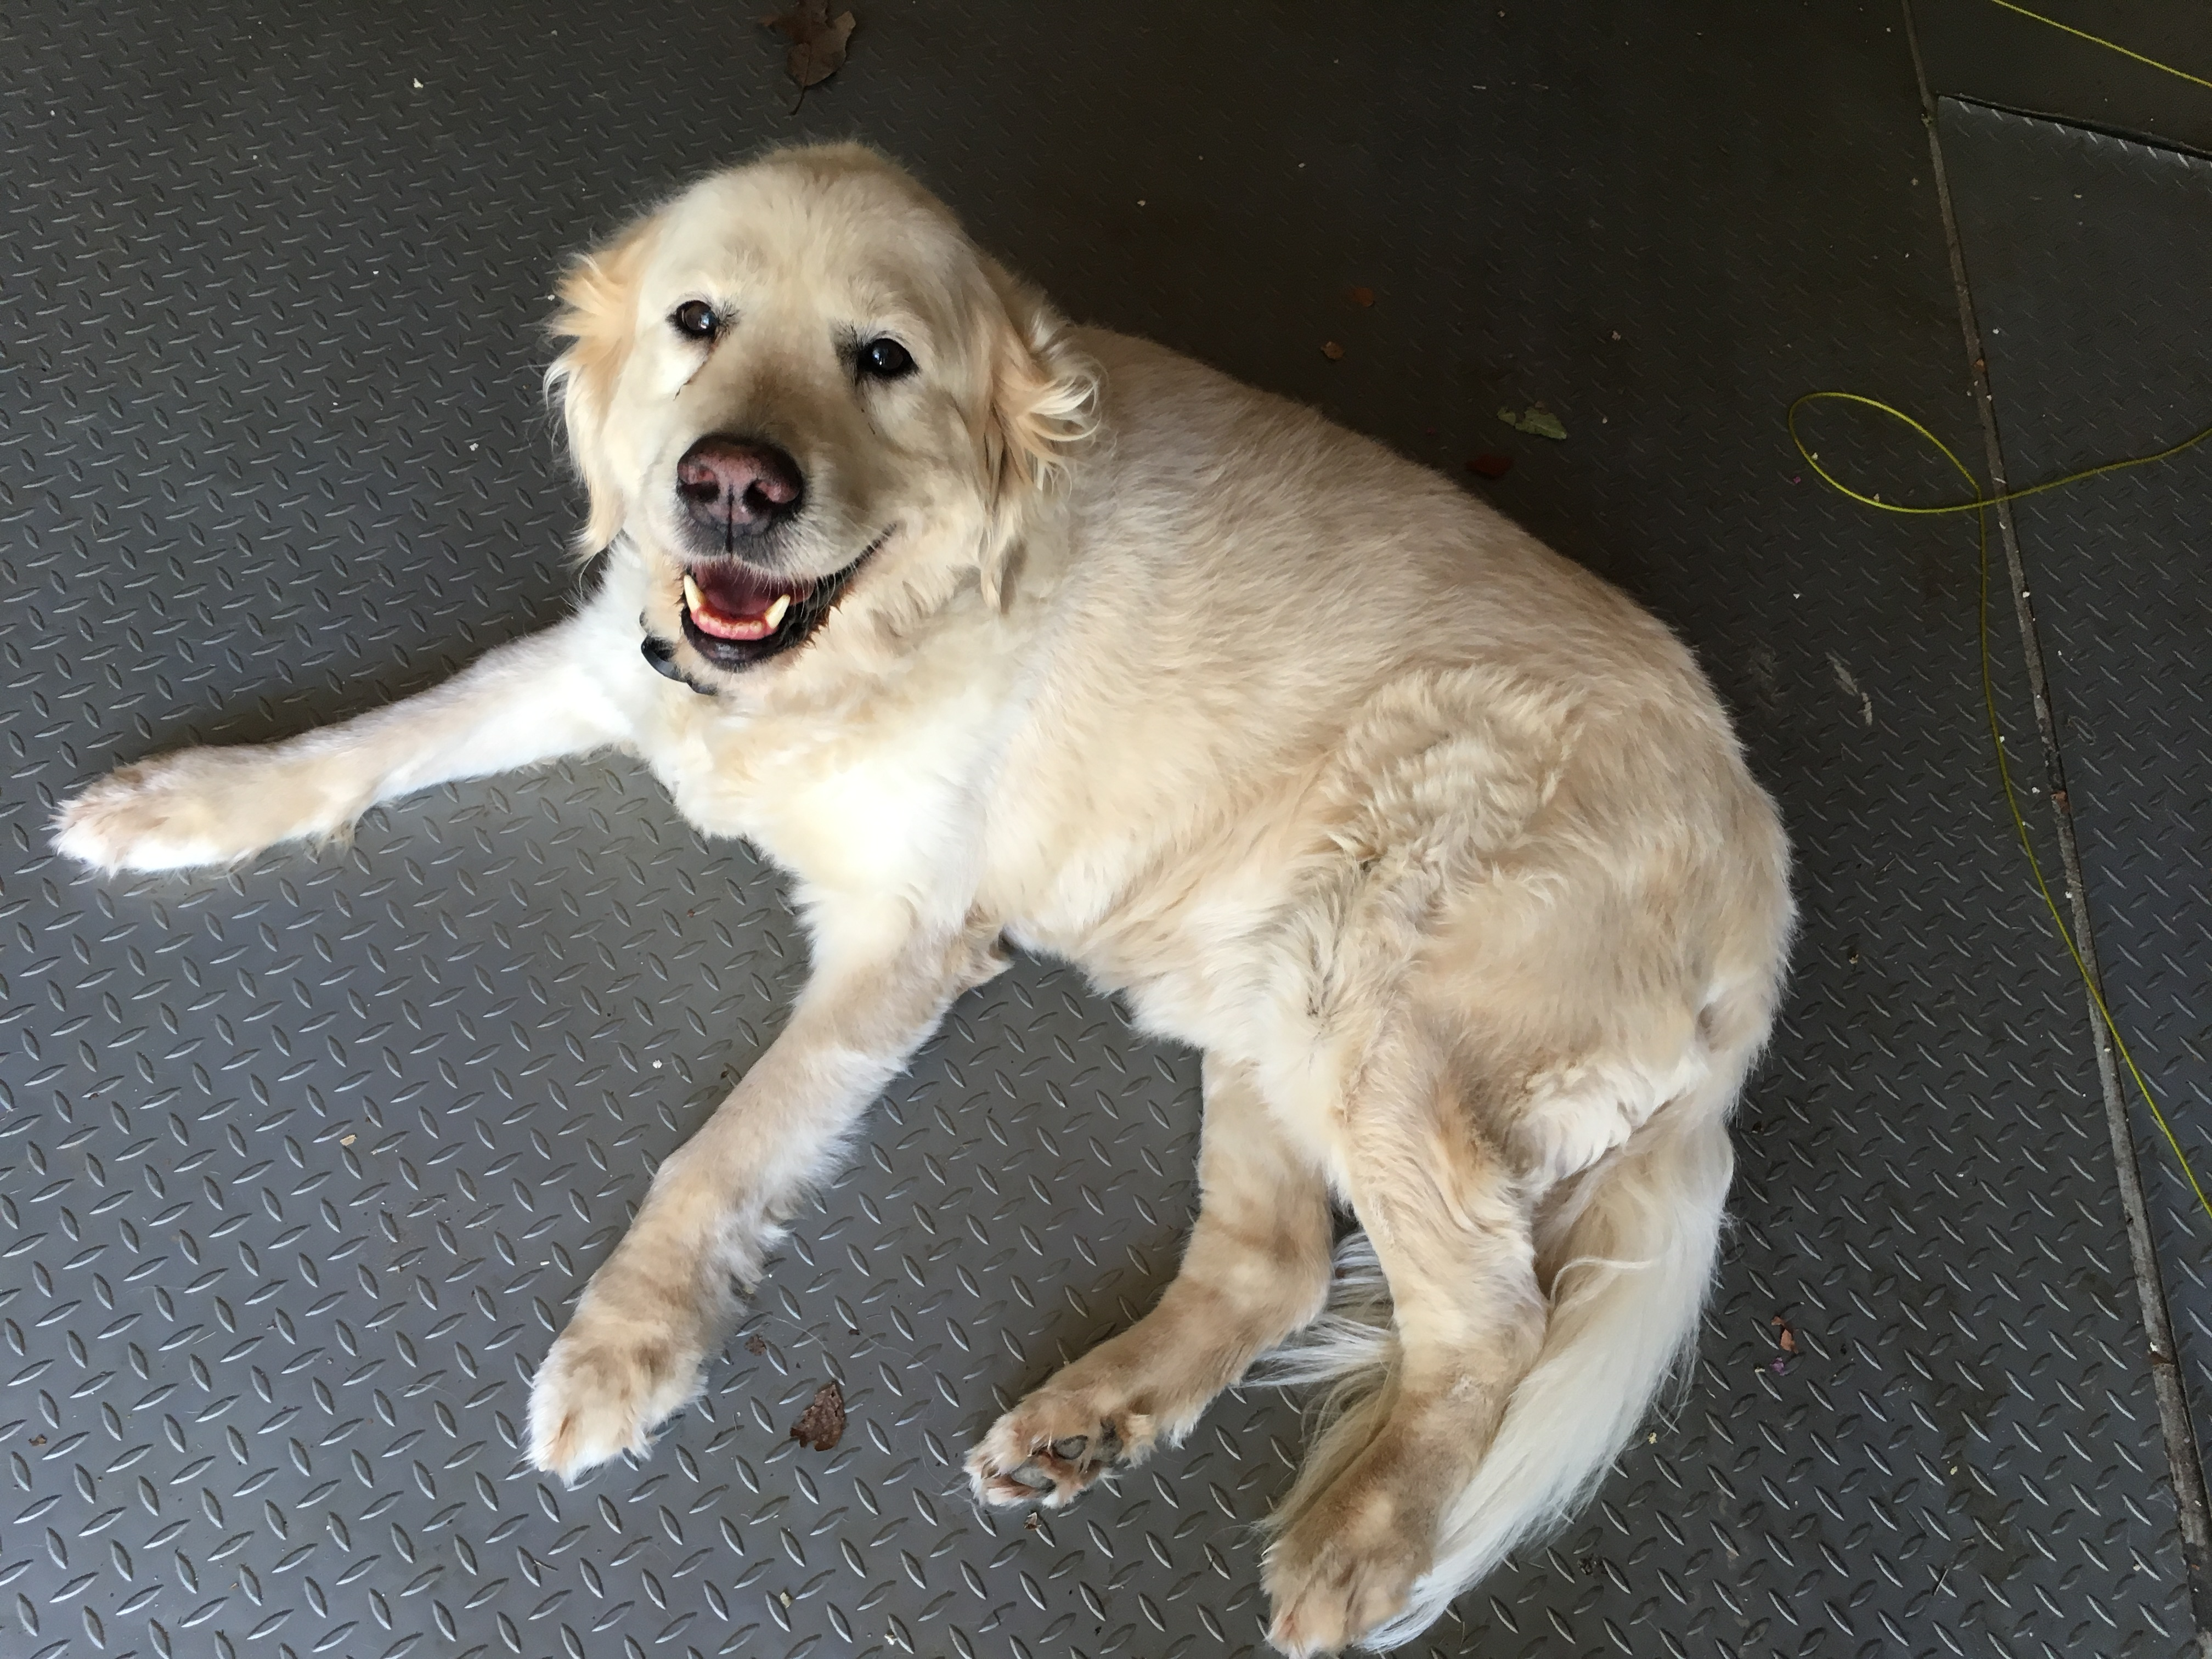 Lost pet: Missing dog from Springville